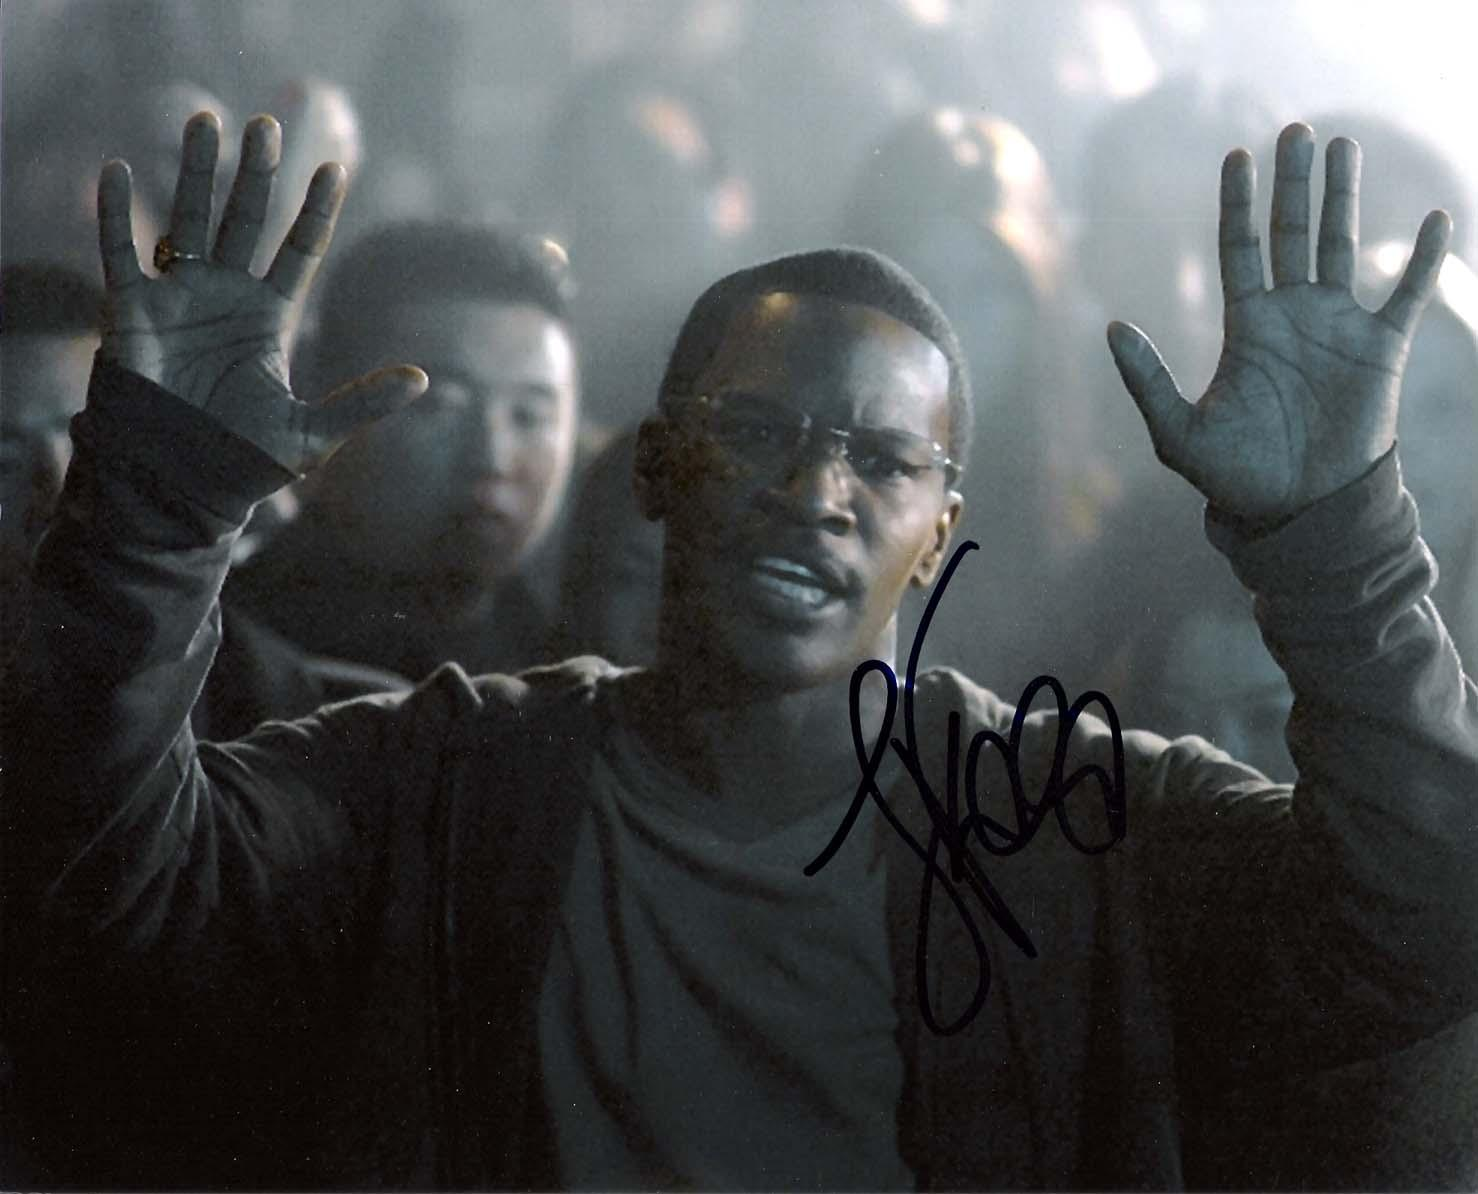 """JAMIE FOXX - Gained Fame in Movies """"RAY"""" and """"COLLATERAL"""" Signed 10x8 Color Photo"""